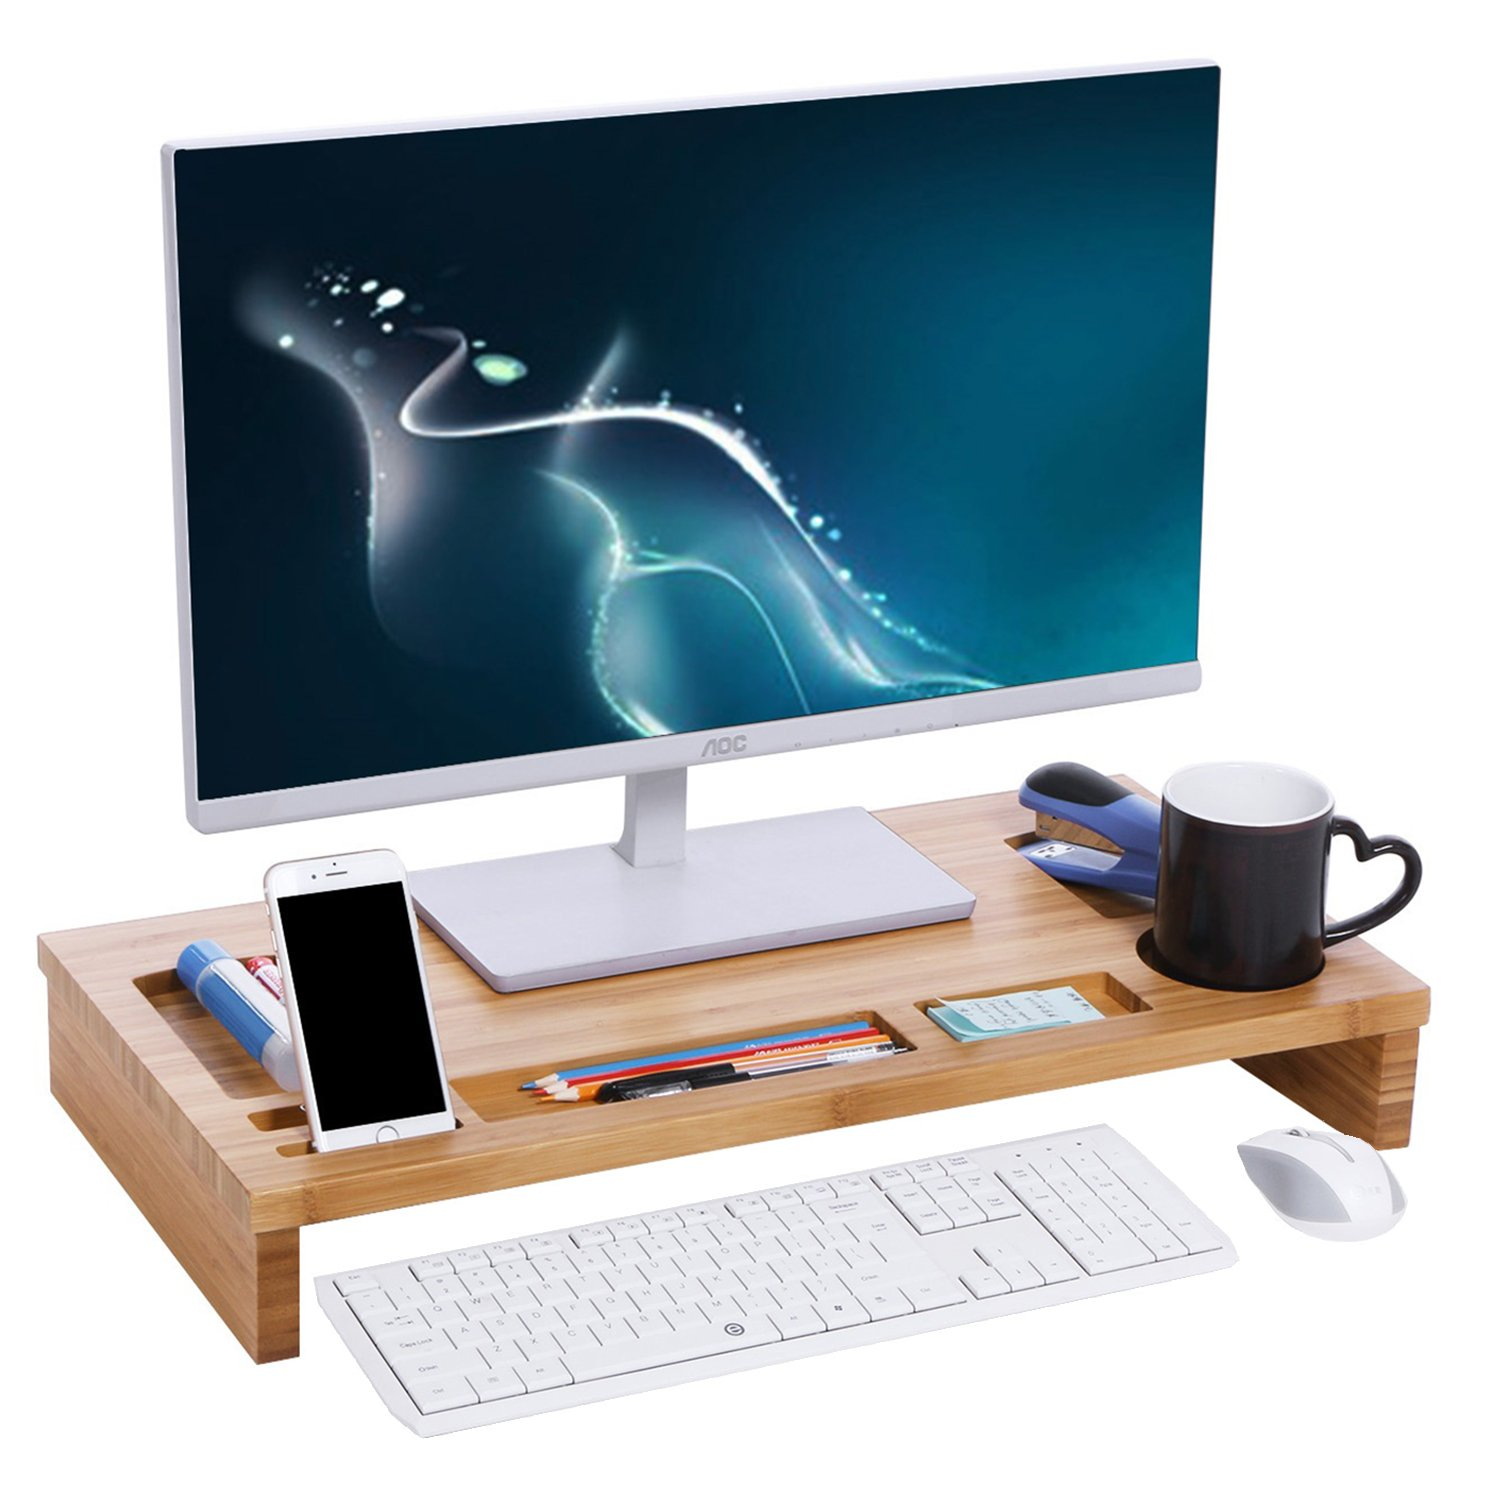 BEWISHOME Bamboo Monitor Stand, Computer Desktop Organizers, Laptop/iMac/Computer/PC Screen Stand, TV Monitor Stands Riser Shelf with Adjustable Storage Organizer Natural Bamboo KDZ01Y